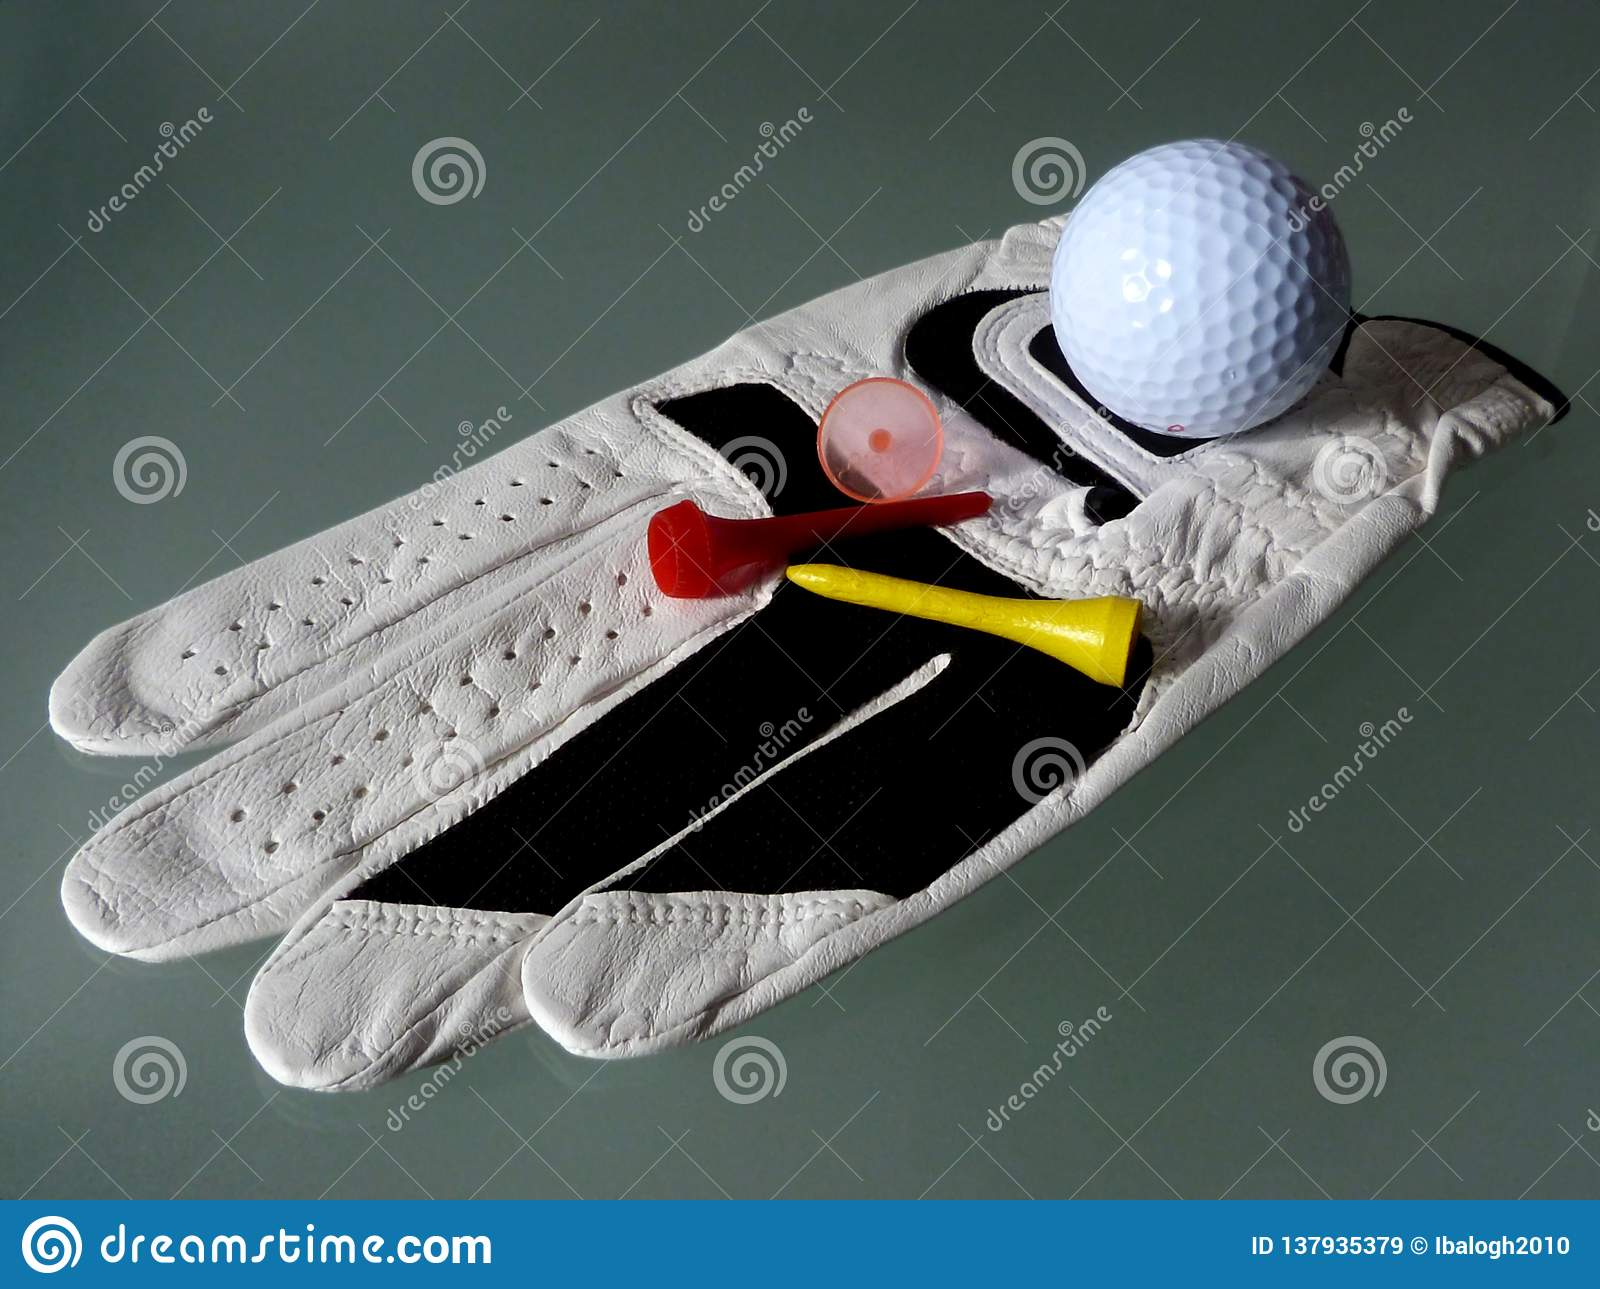 White leather golf glove close-up with tee and marker peg.